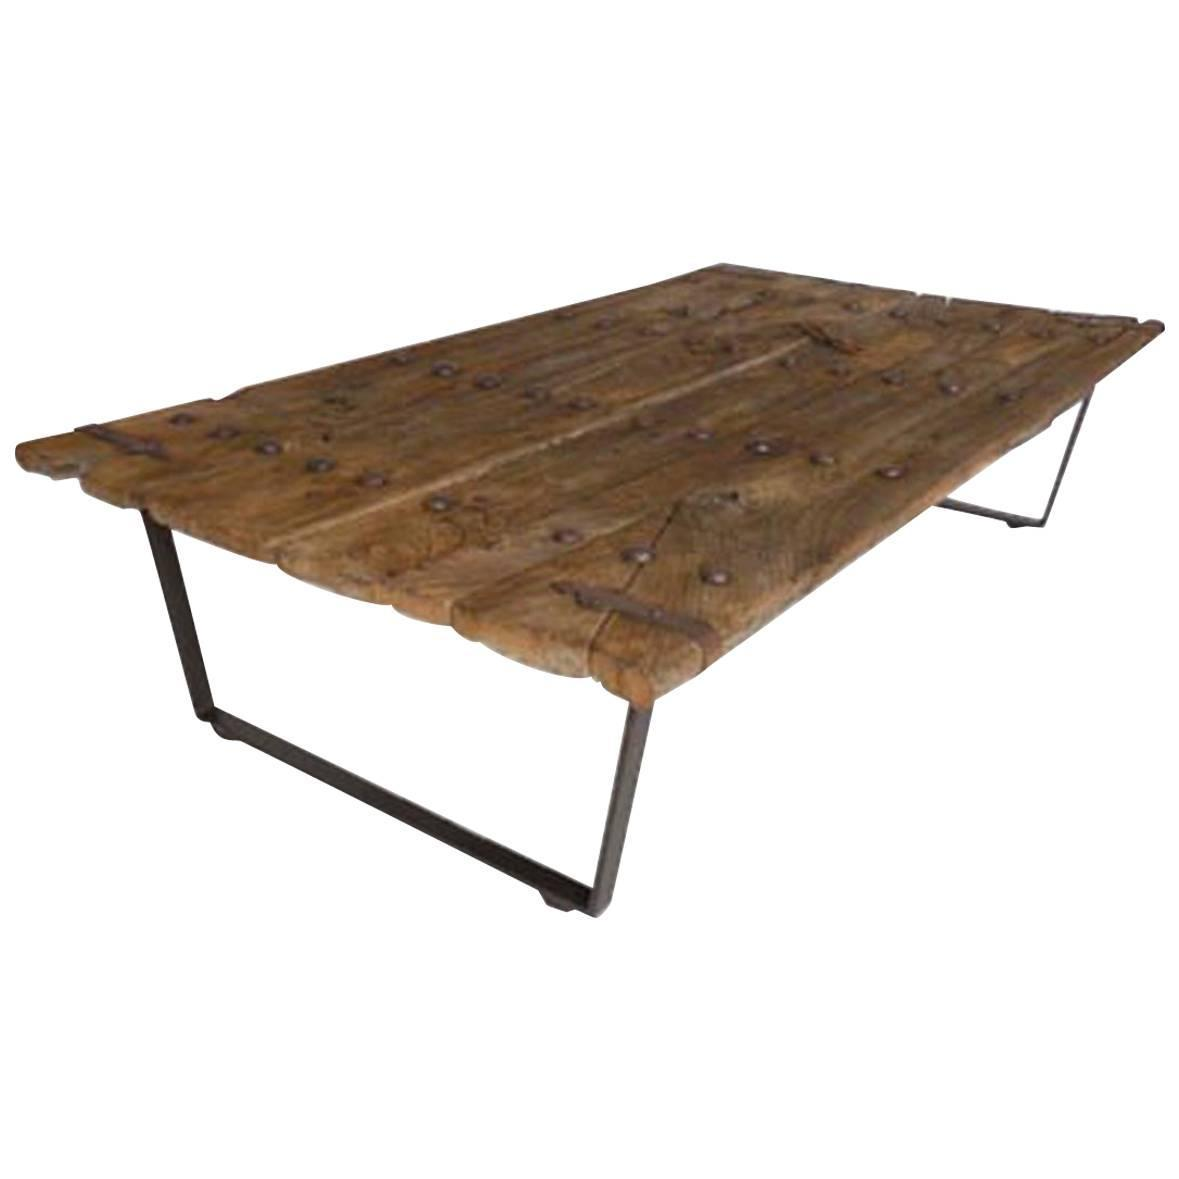 Early Japanese Elm Door Coffee Table with Iron Nails on Custom Base For  Sale at 1stdibs